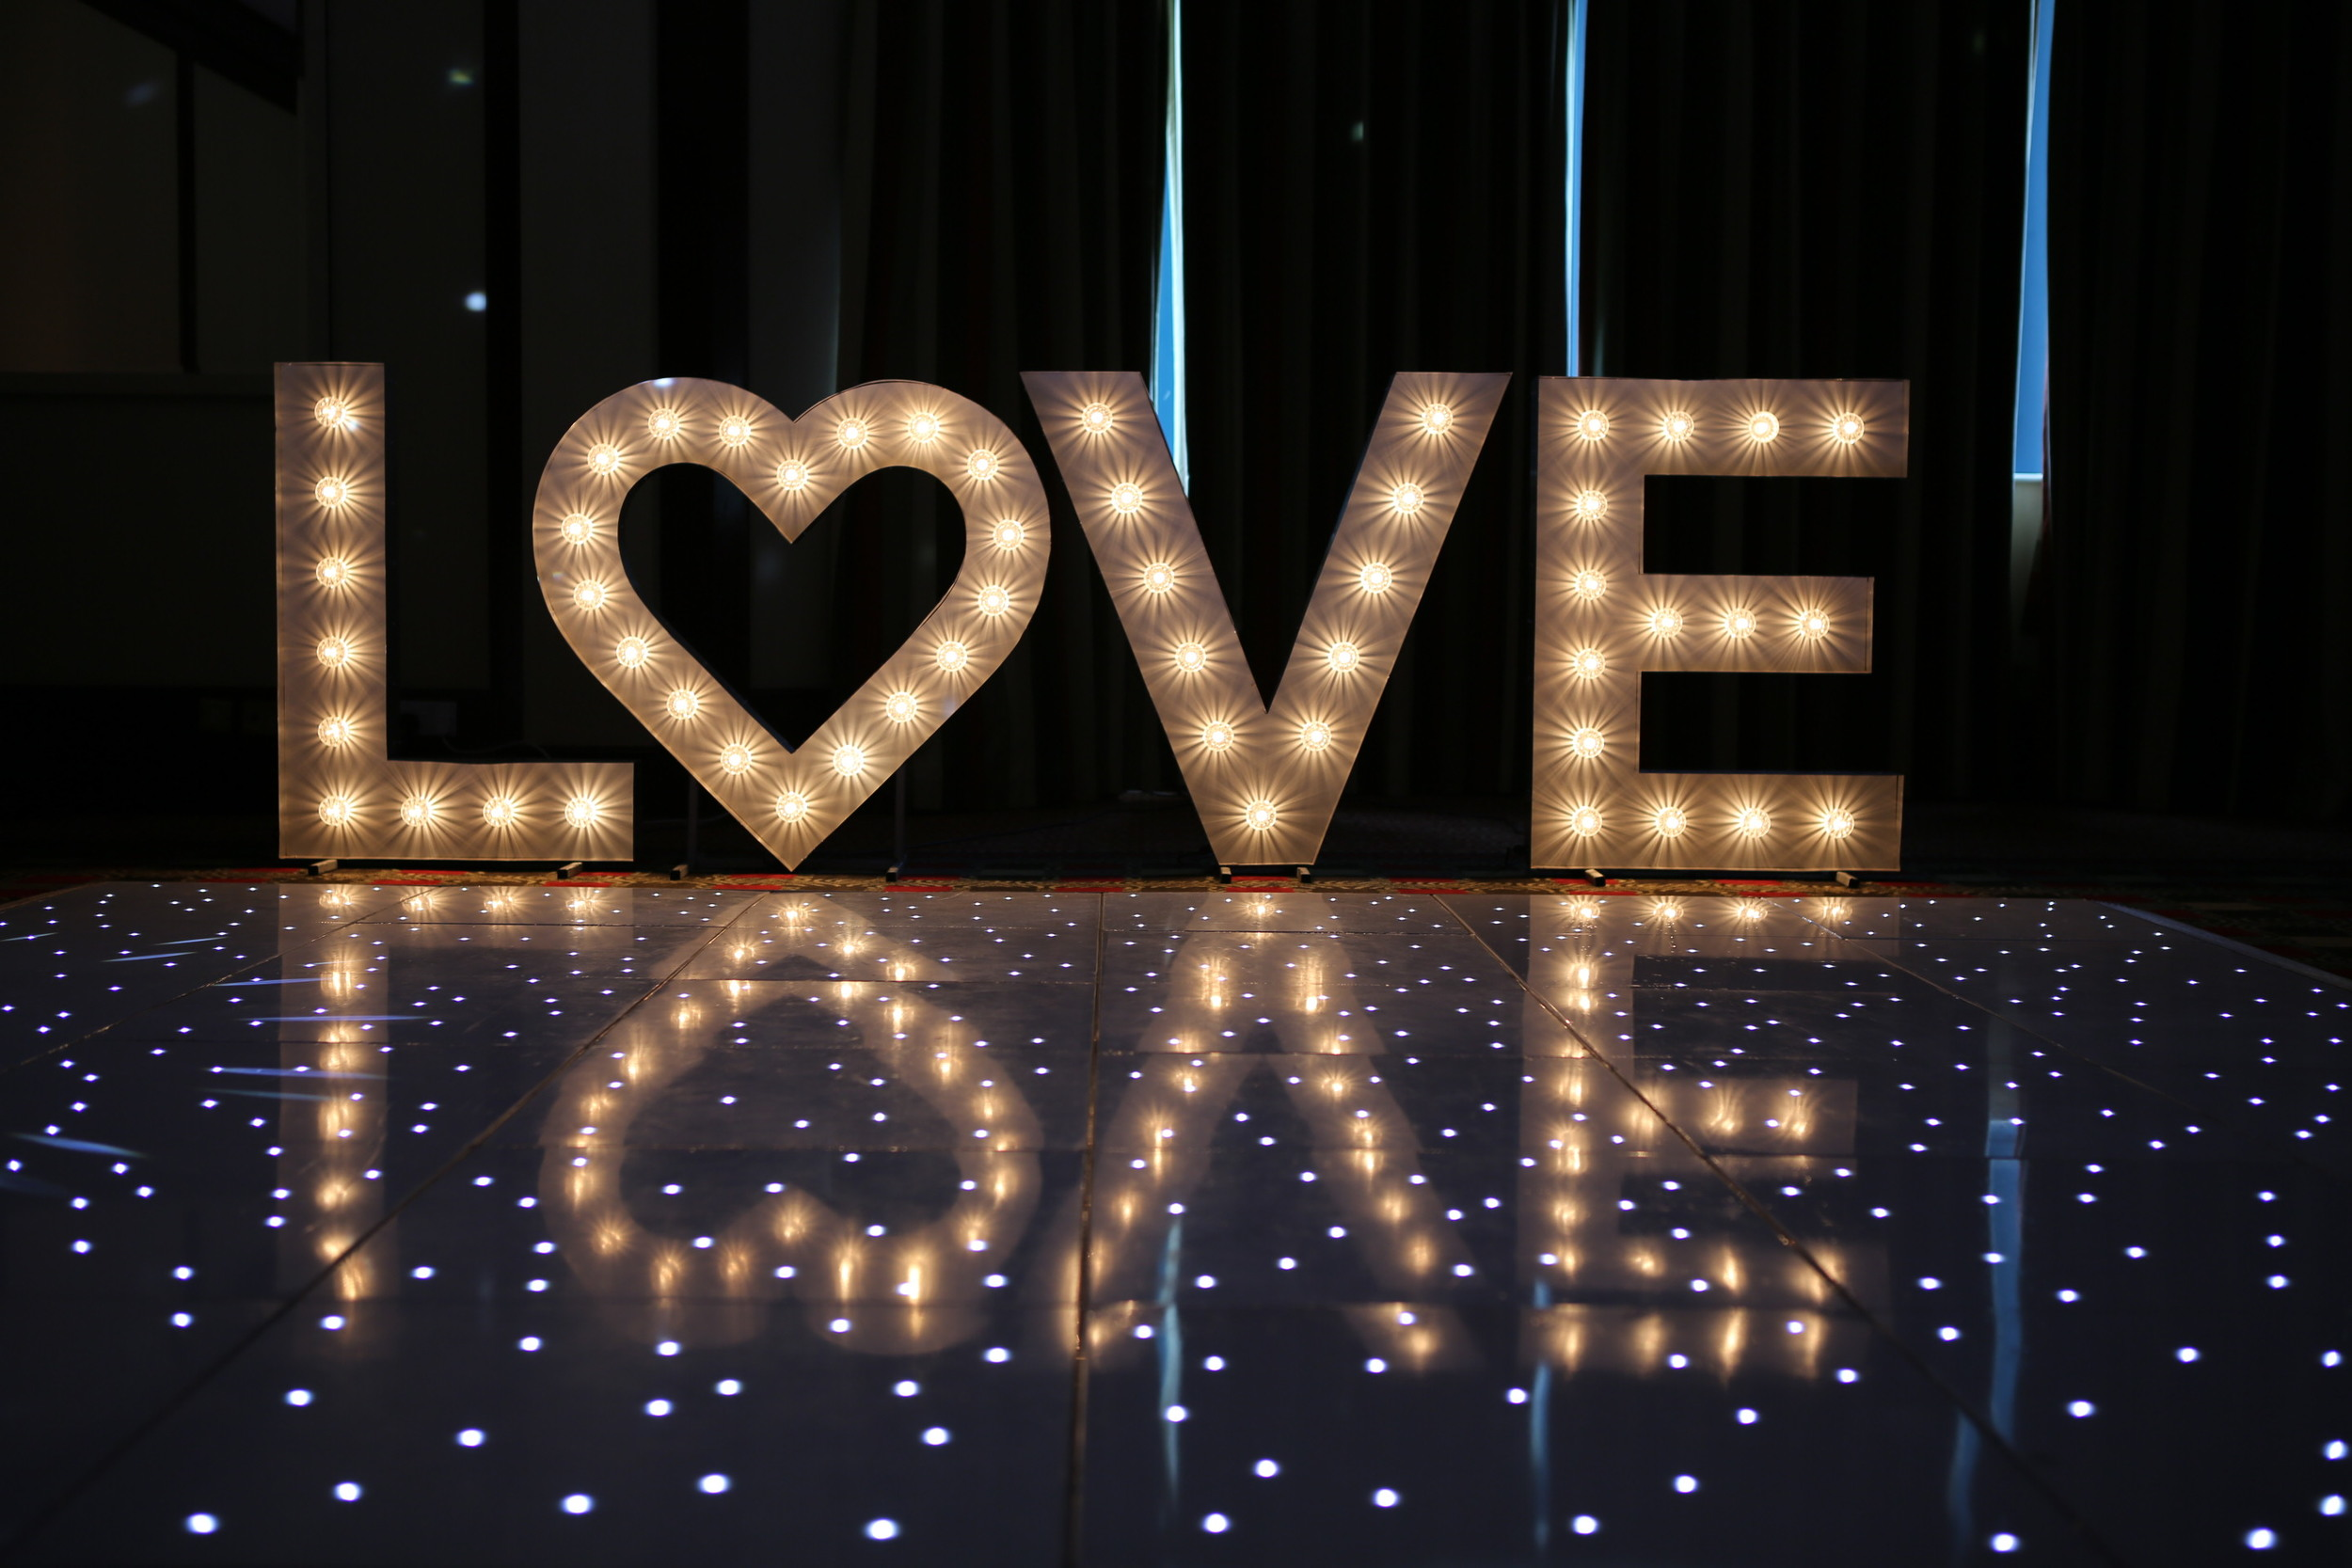 our vintage giant LOVE lettering - this look awesome and we can dim the lights for a lovely mood. Simply beautiful lighting solutions form BlueMark Entertainment your hertfordshire based wedding DJ